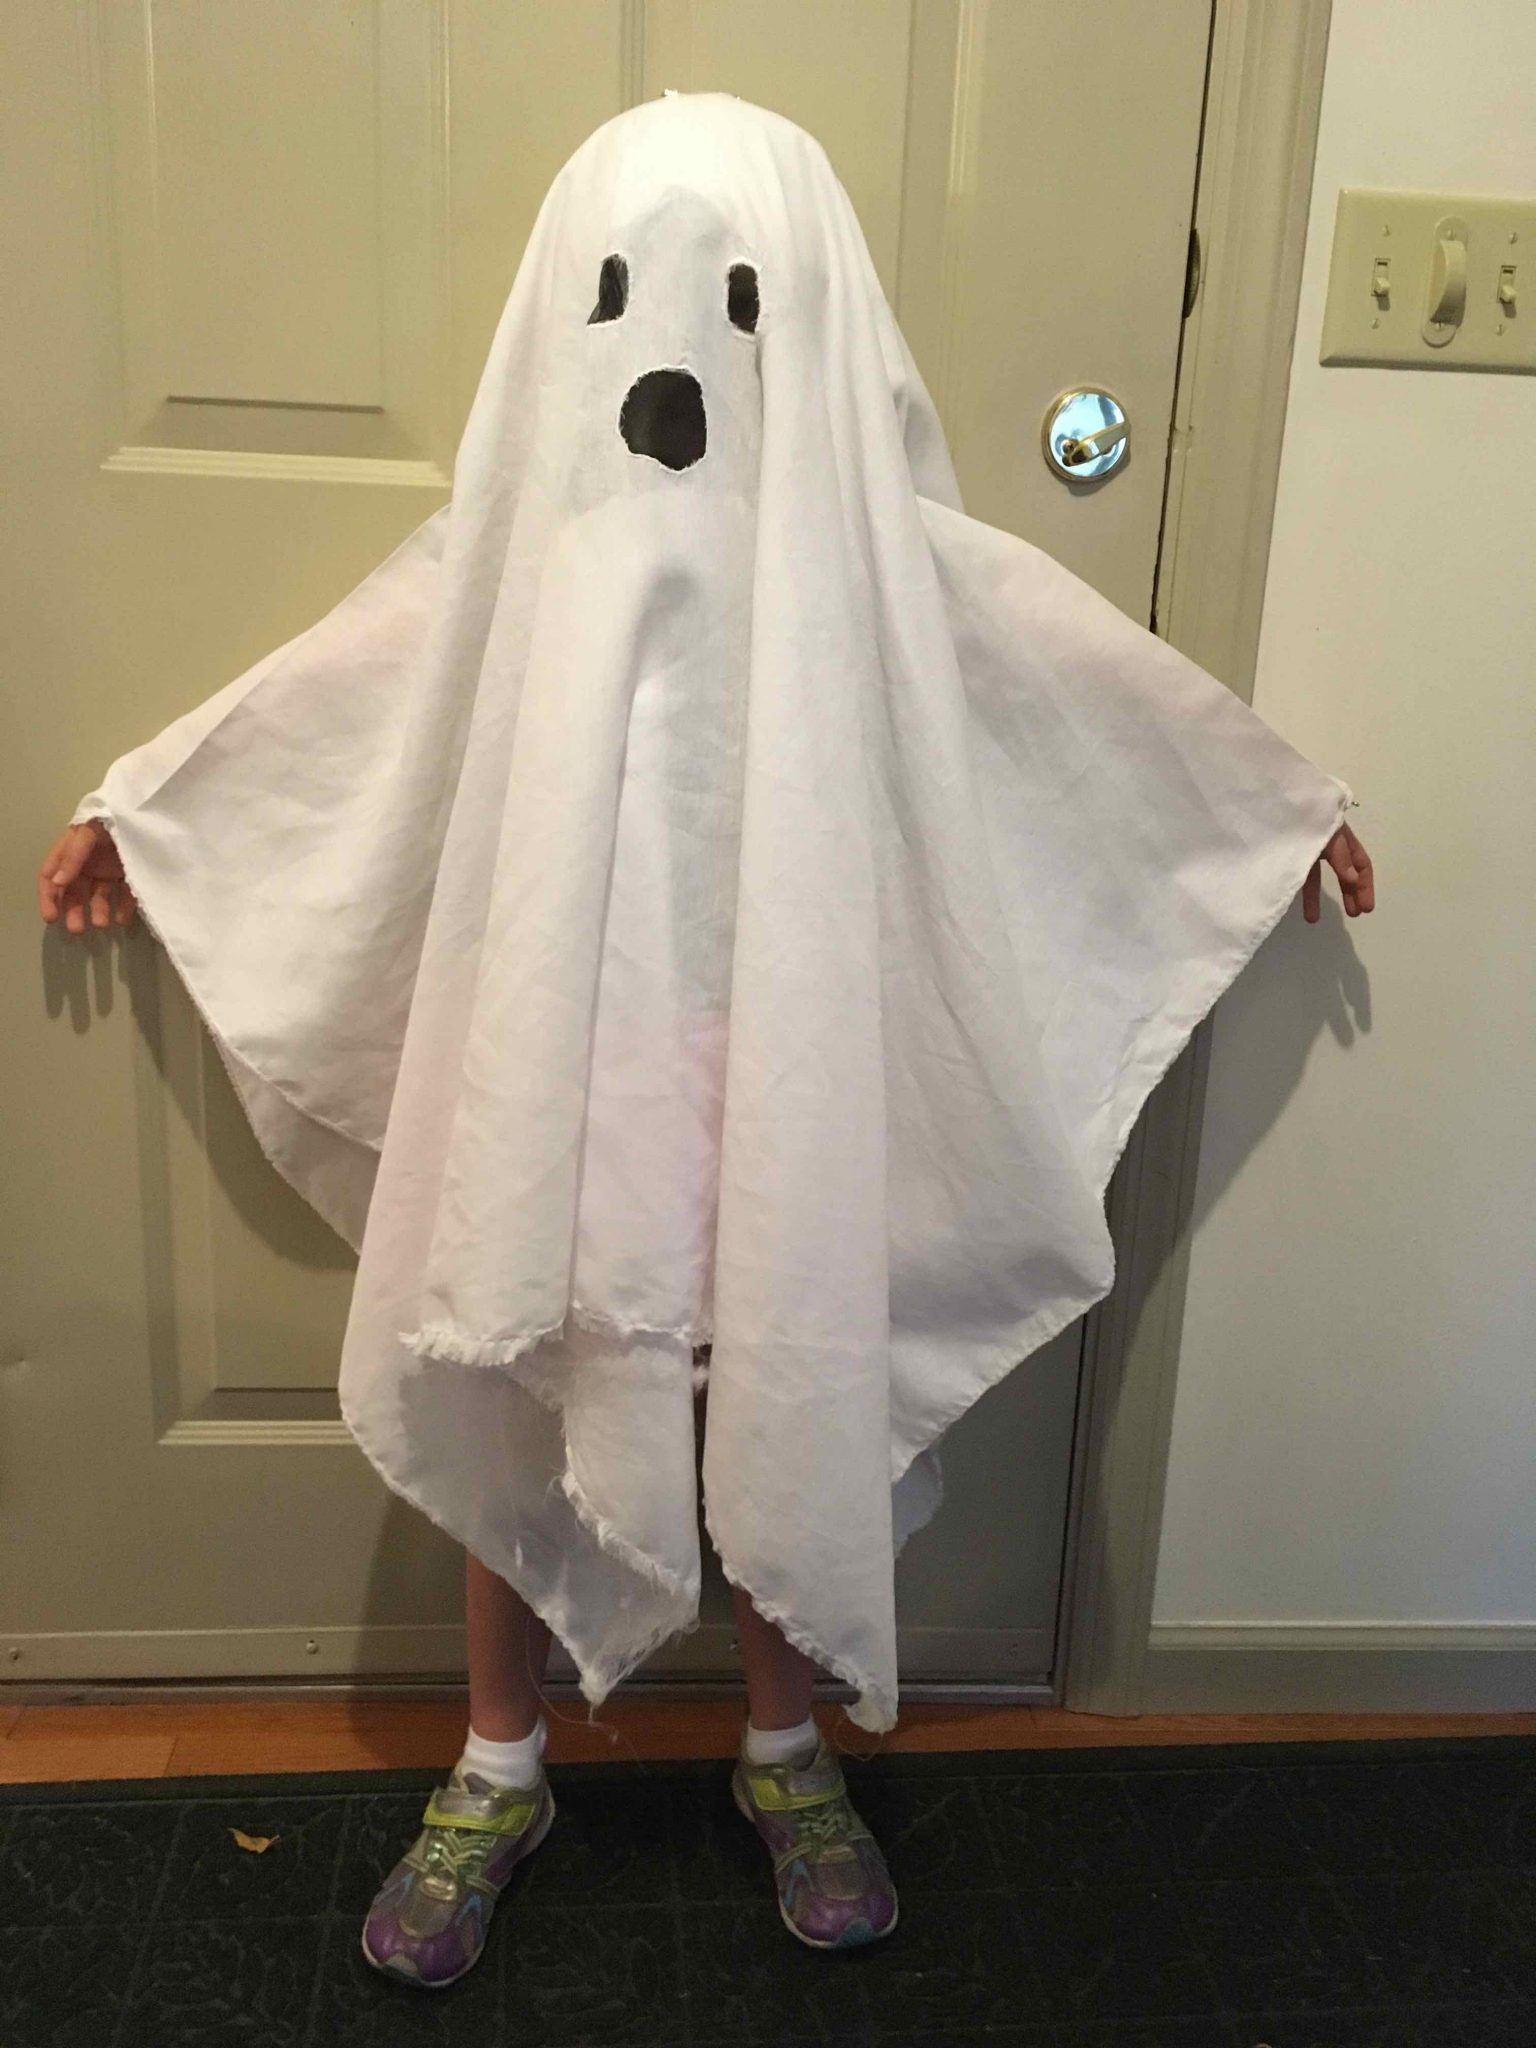 How To Make A Ghost Costume (It's Harder Than You'd Think ...